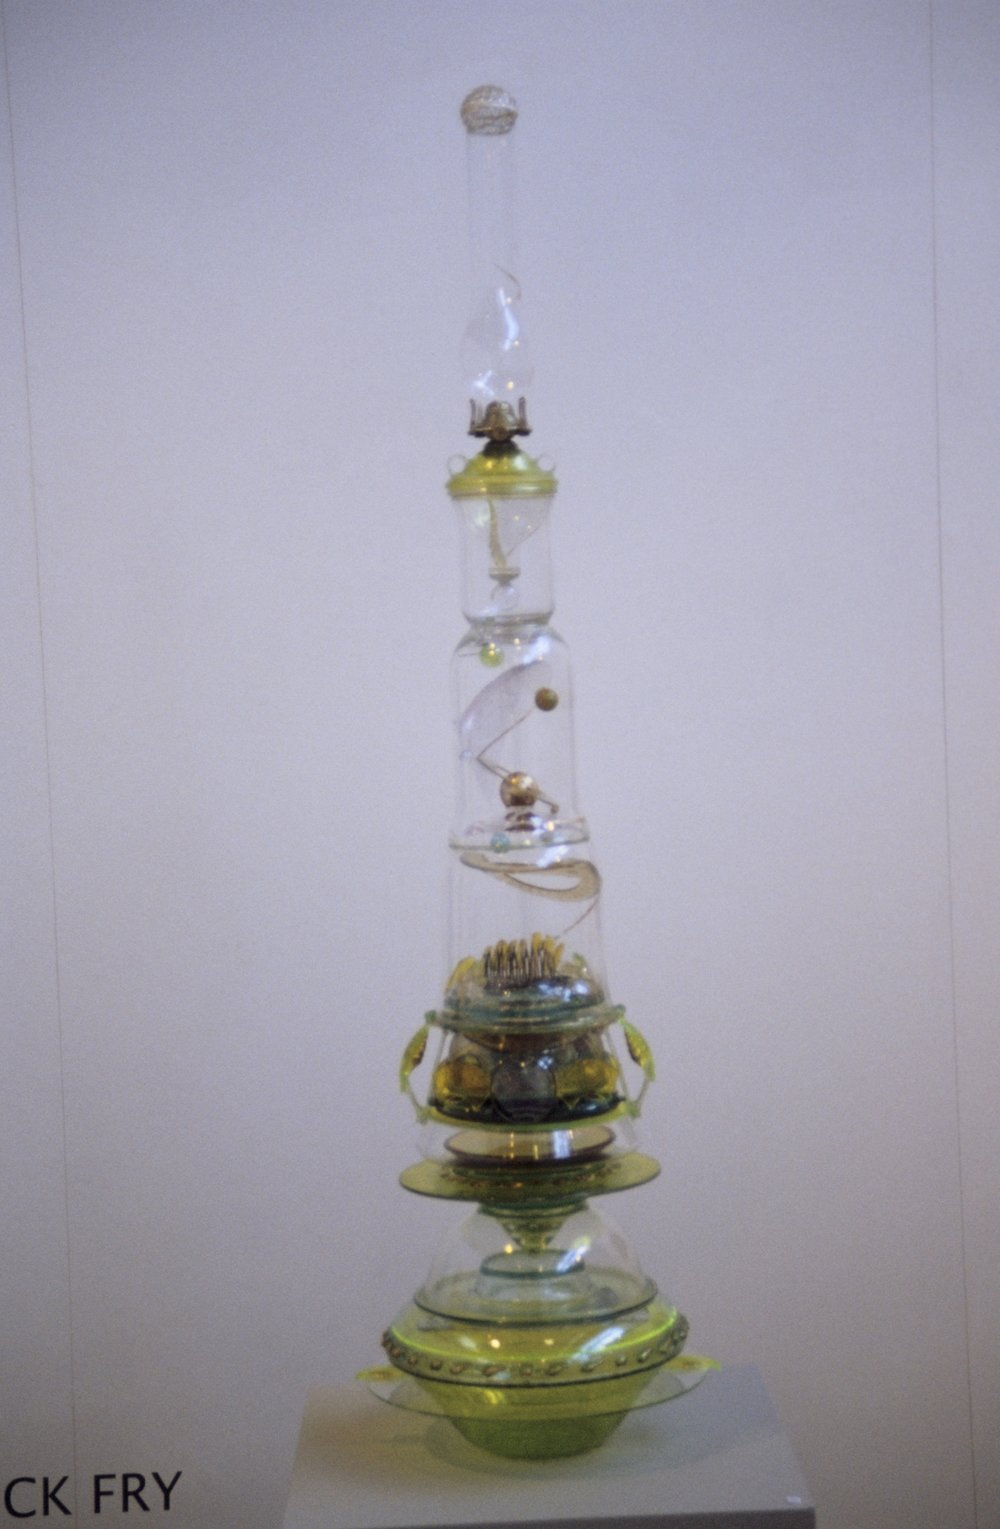 Cosmos, 2009-10, Oil lamp – mixed media, 31 x 135 x 35 cm